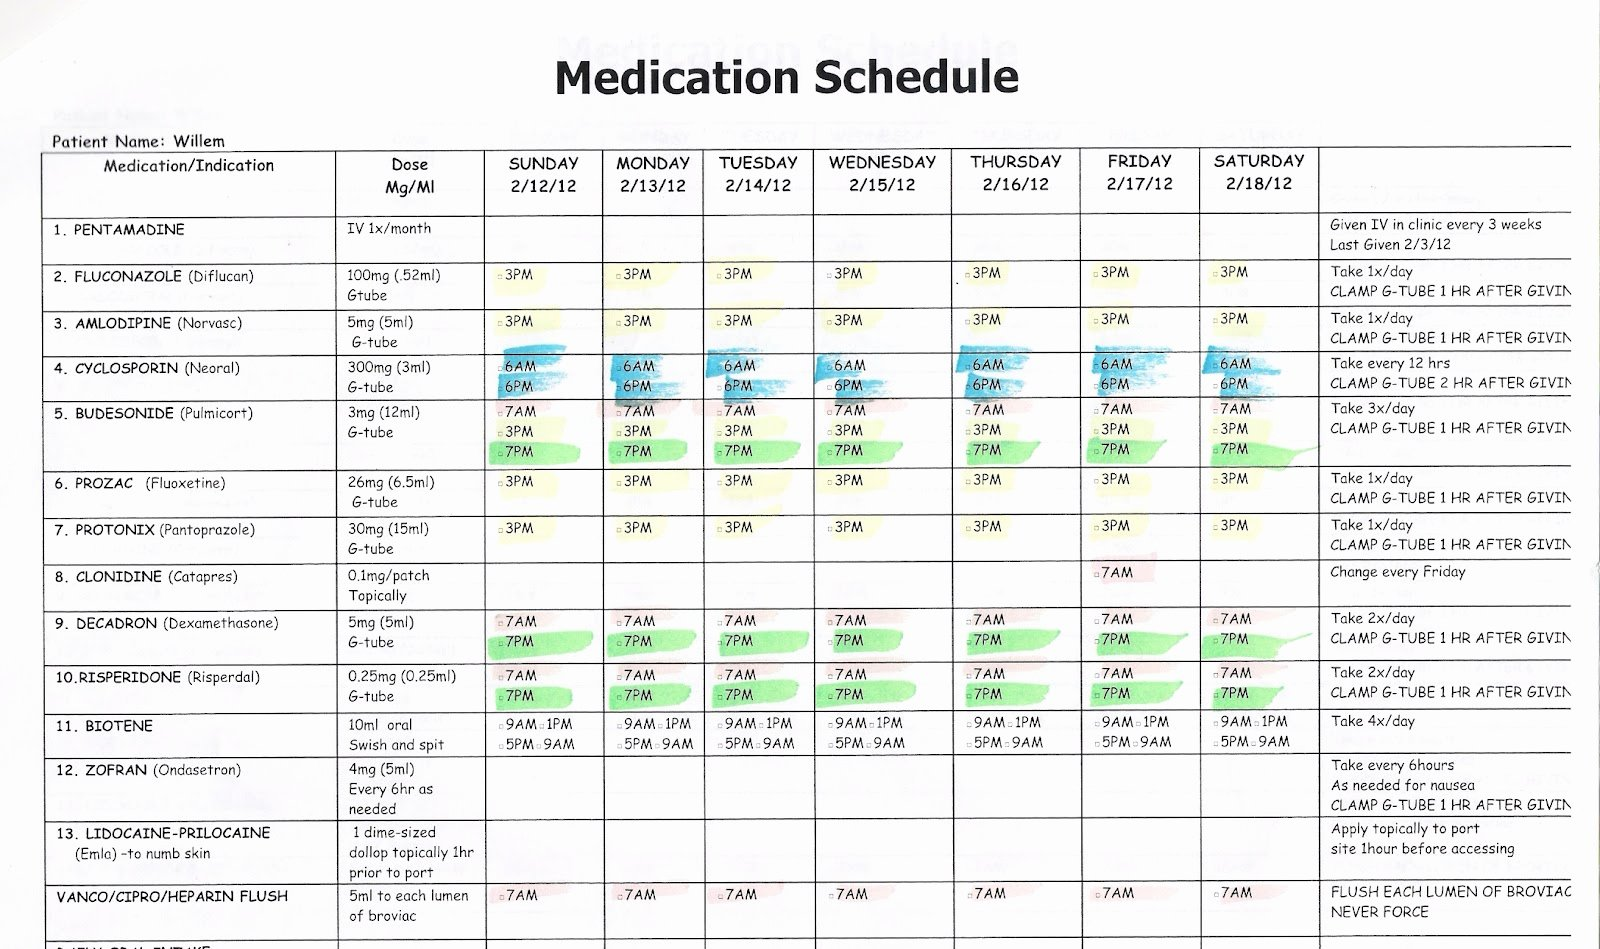 Weekly Medication Schedule Template Awesome Willem February 2012